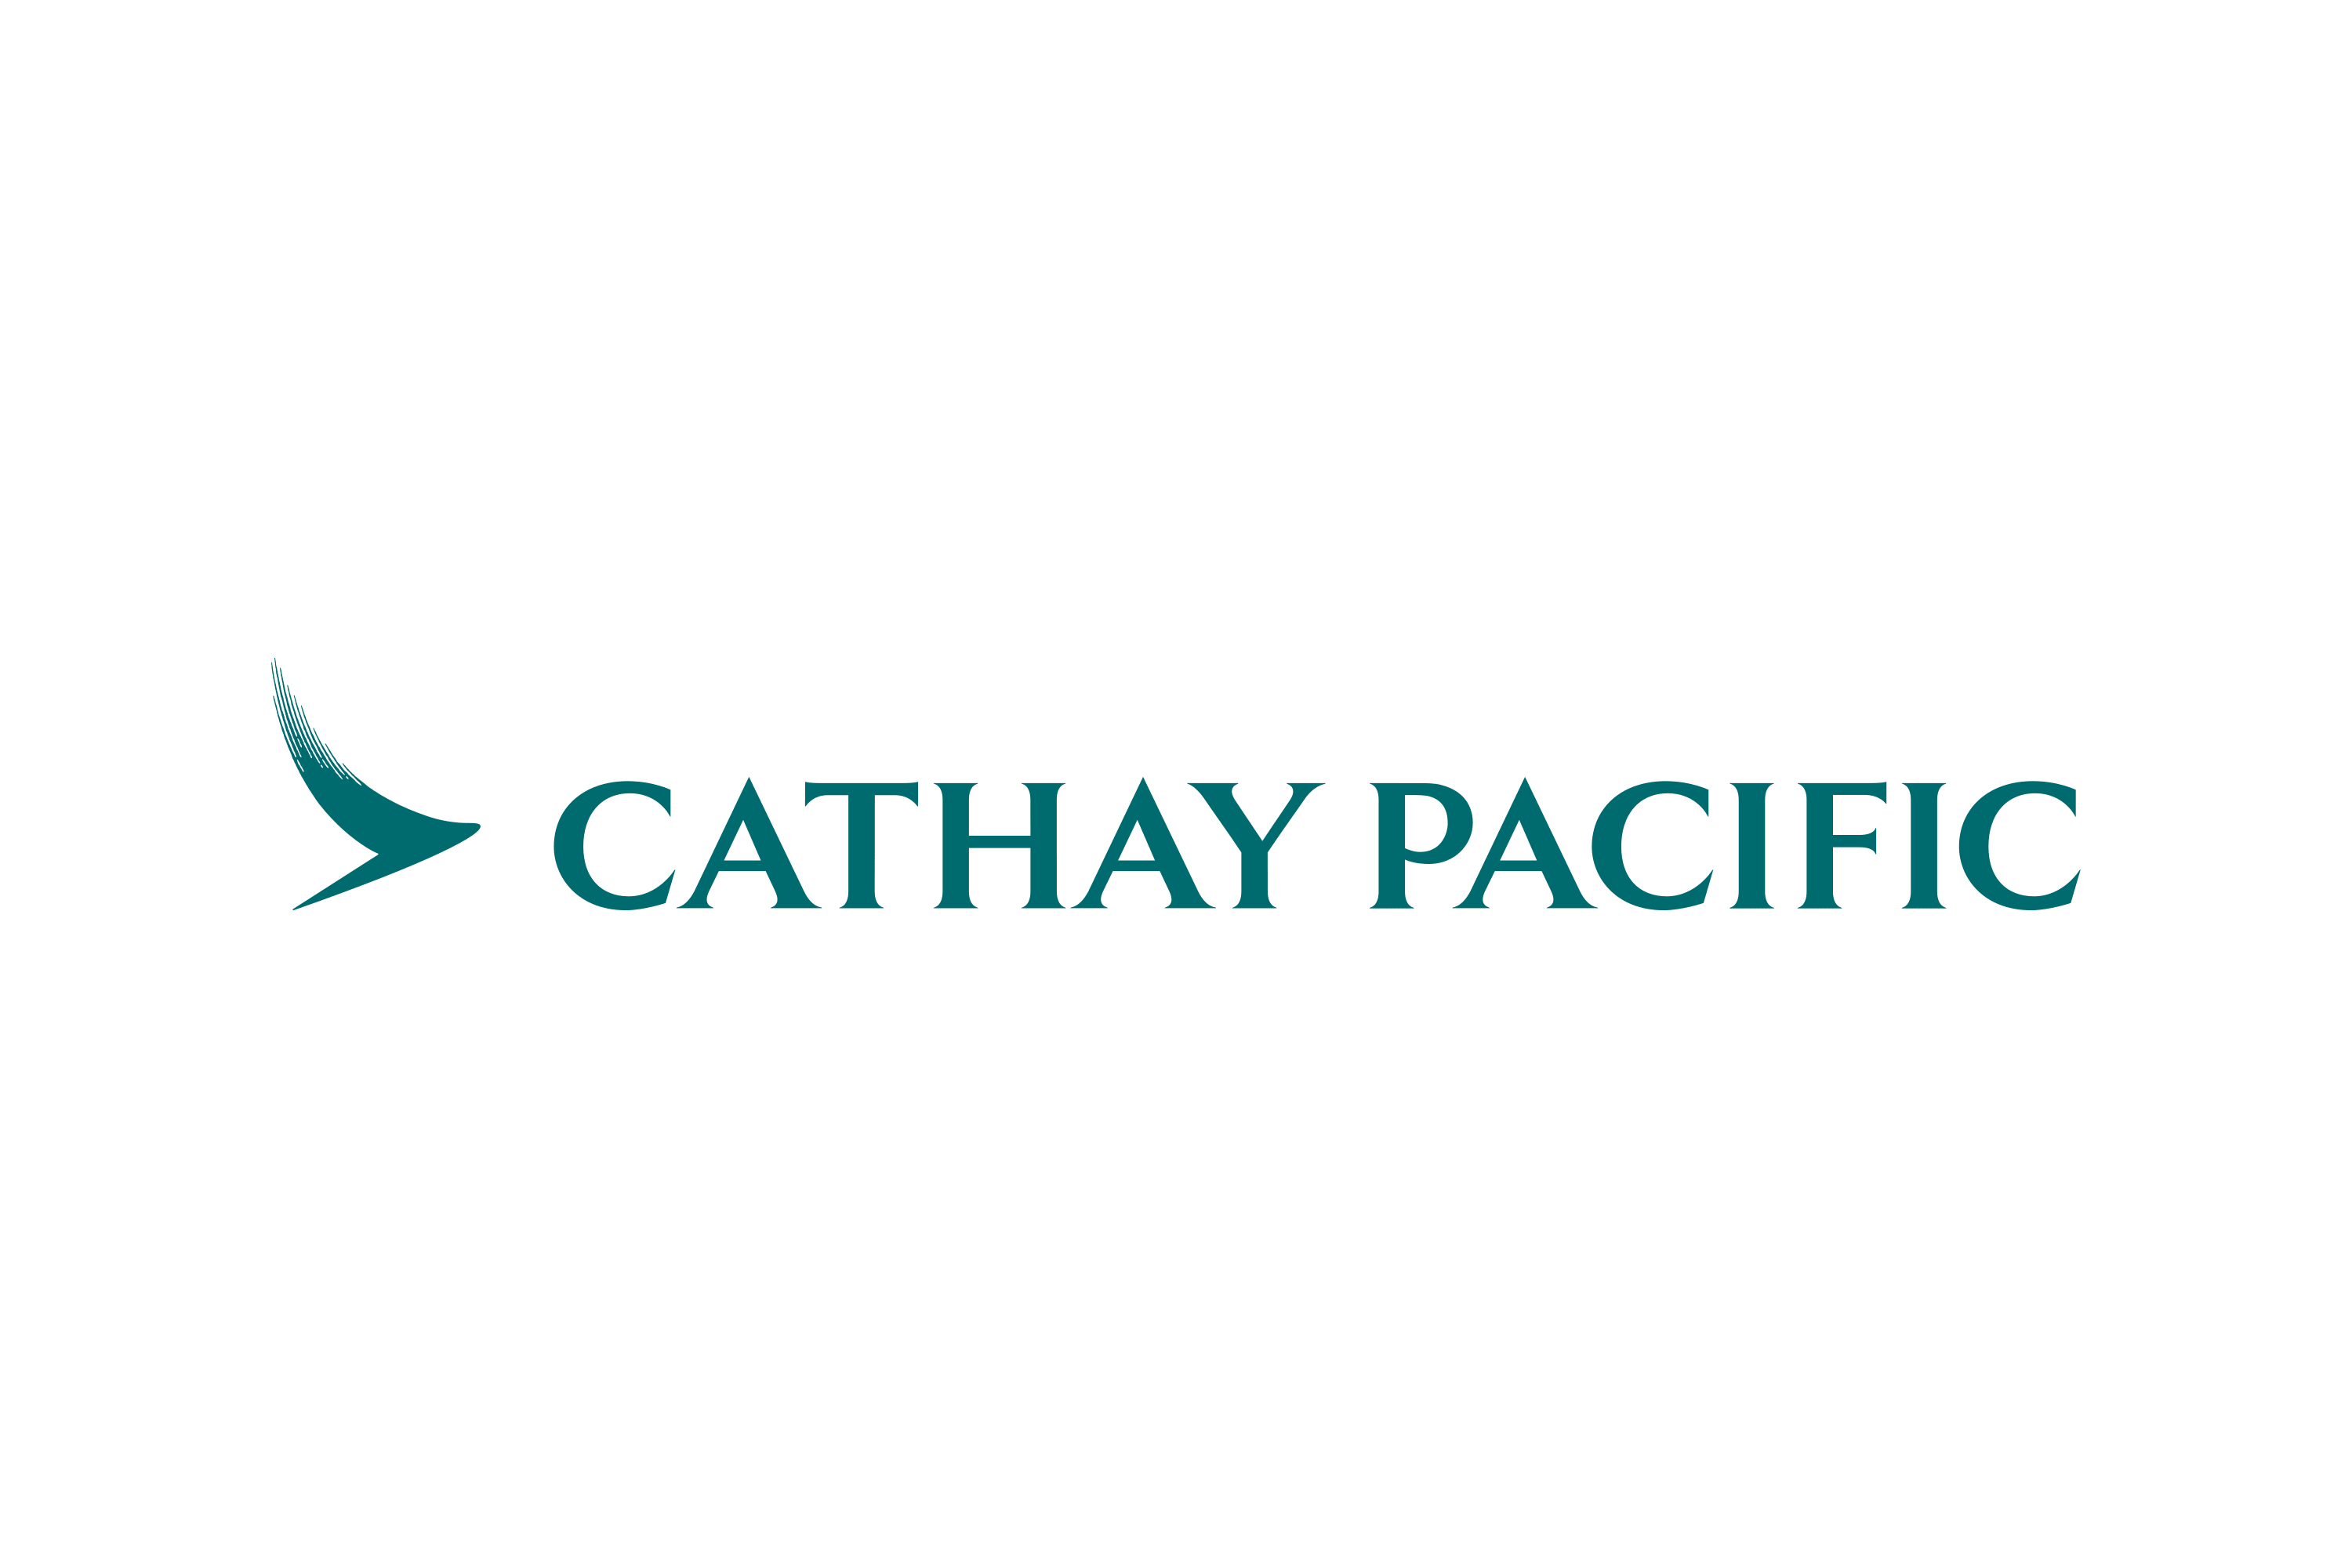 Cathay_Pacific-Logo